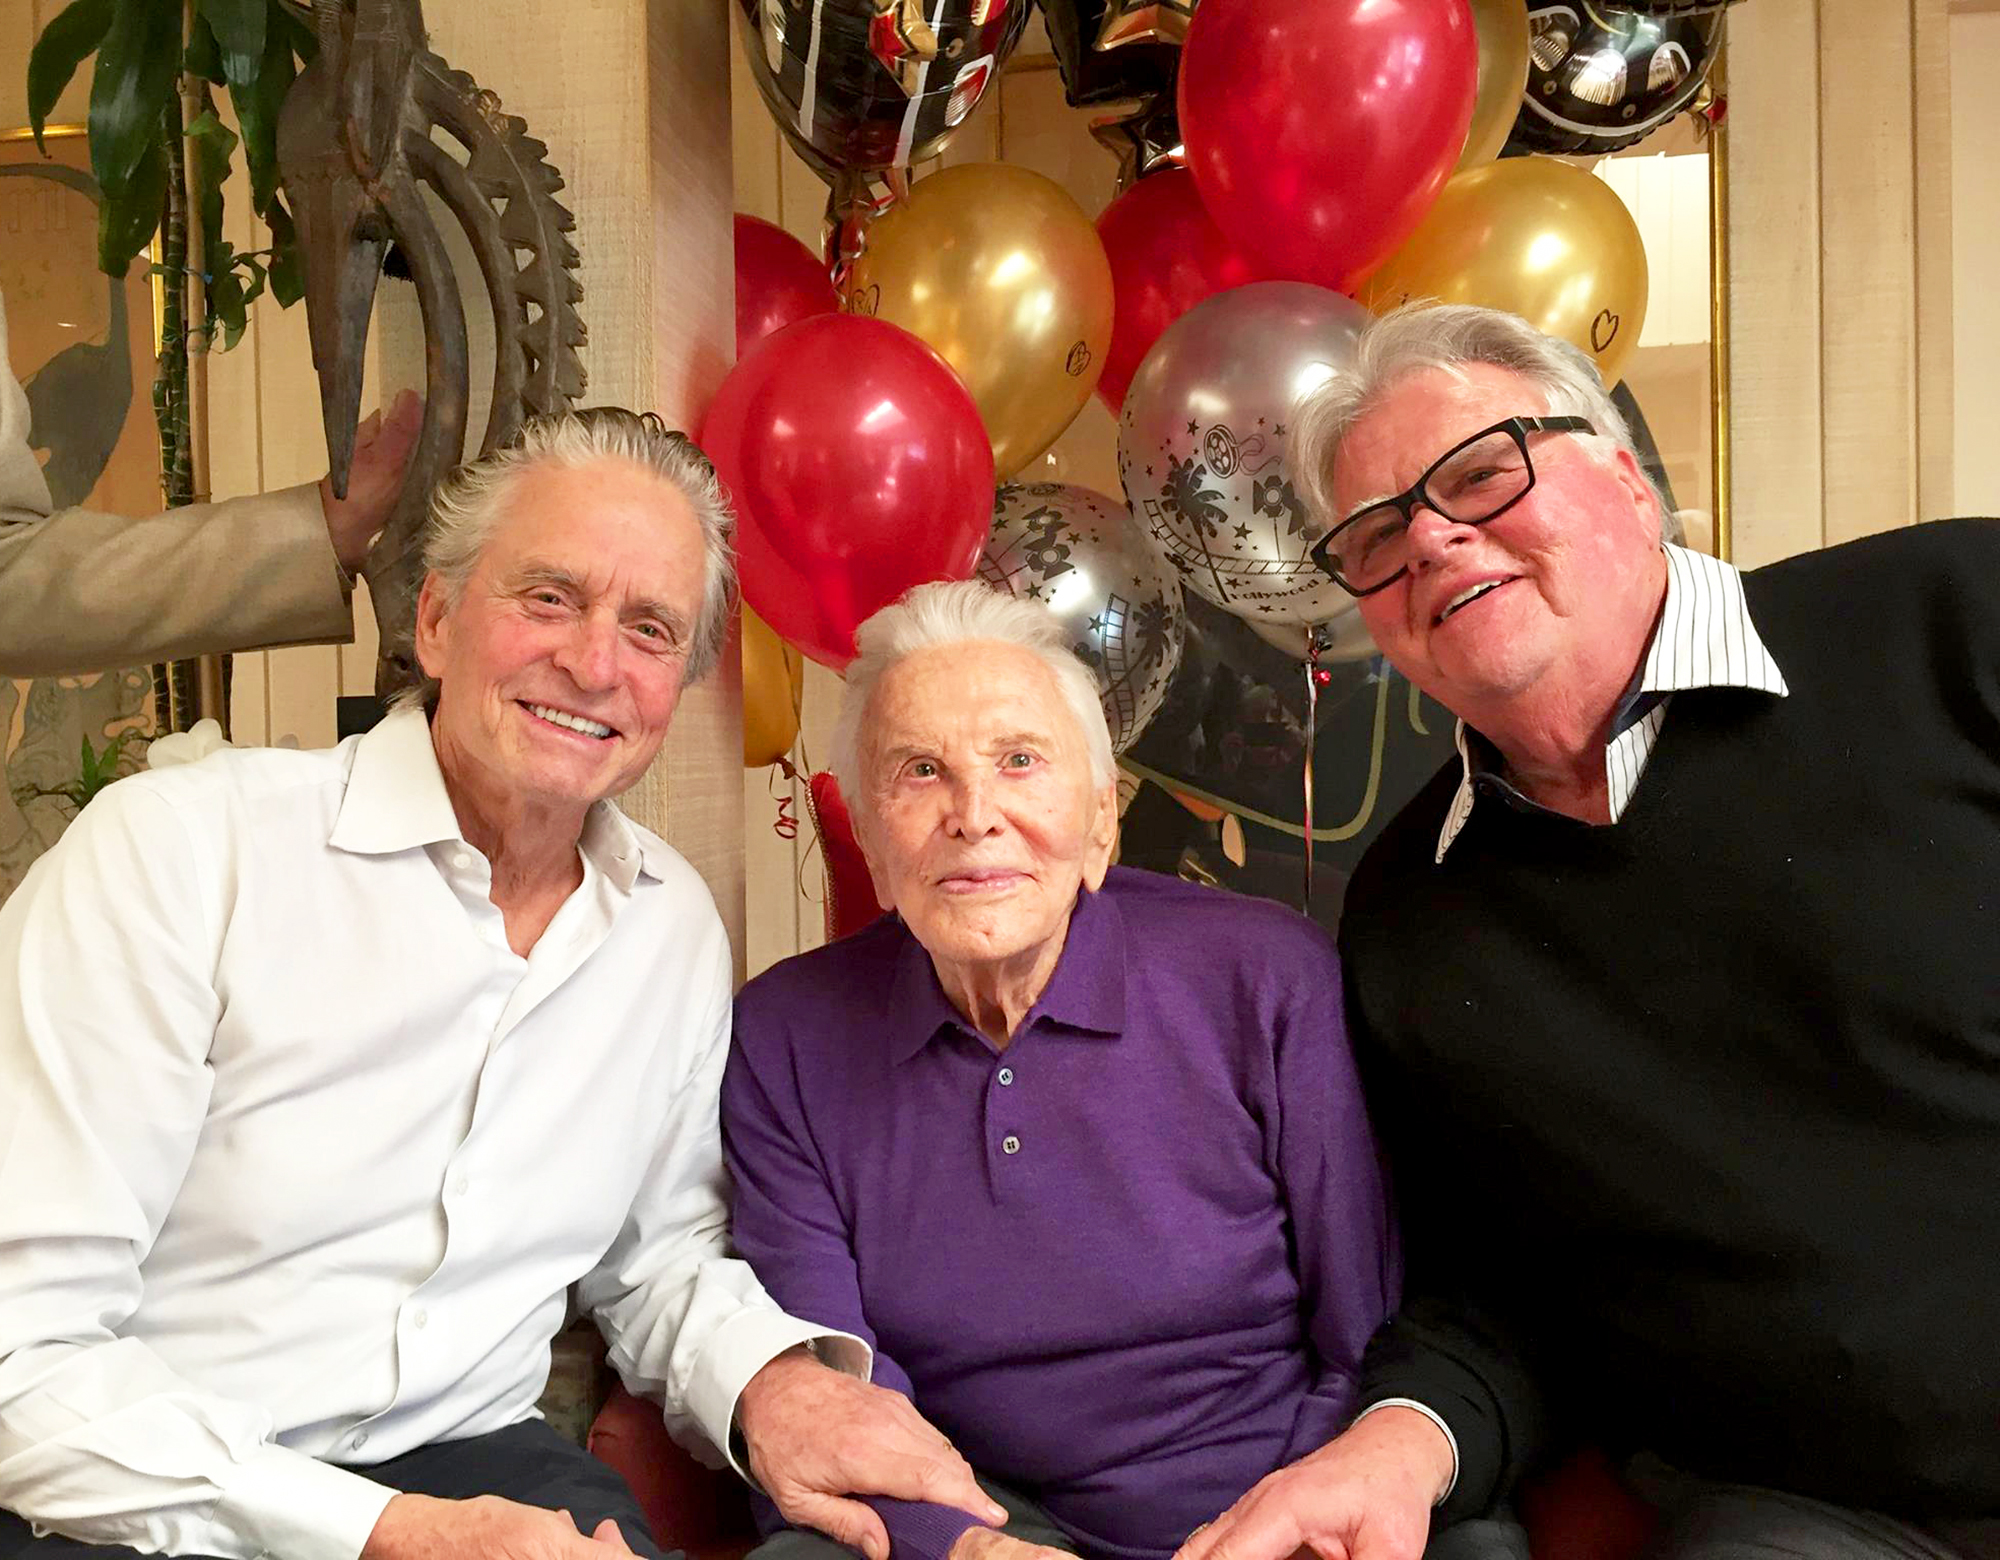 Kirk Douglas Celebrates 101st Birthday - An Exclusive Look Inside The Family Party